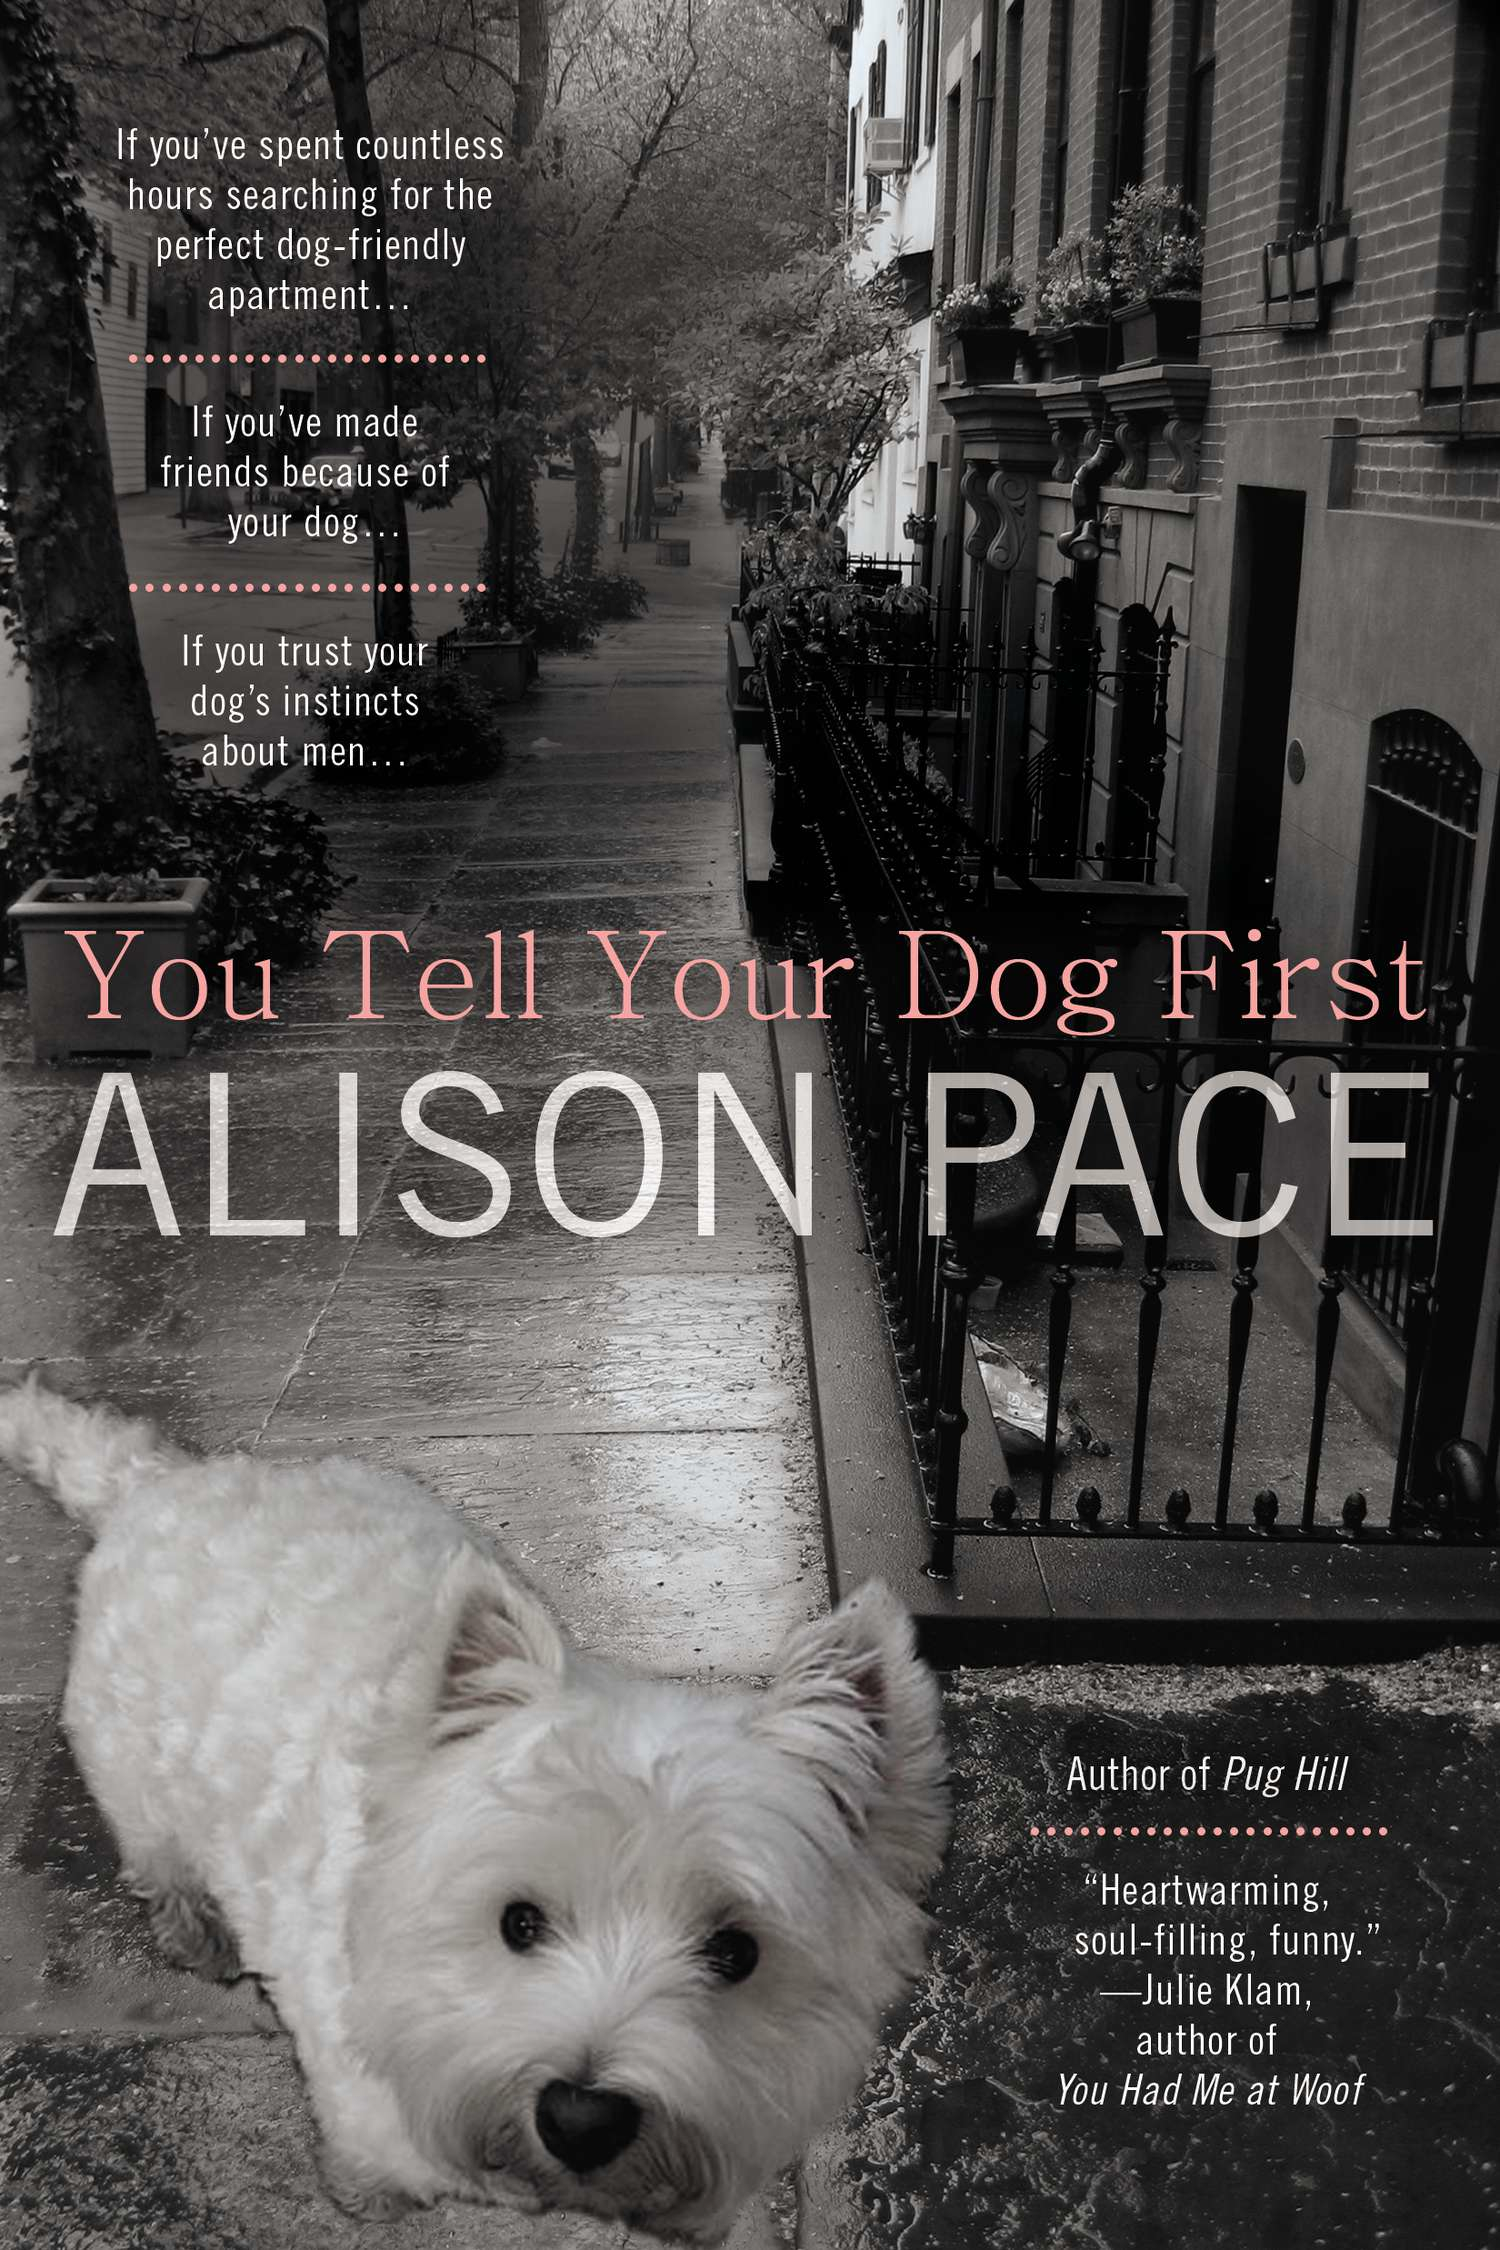 You Tell Your Dog First by Alison Pace